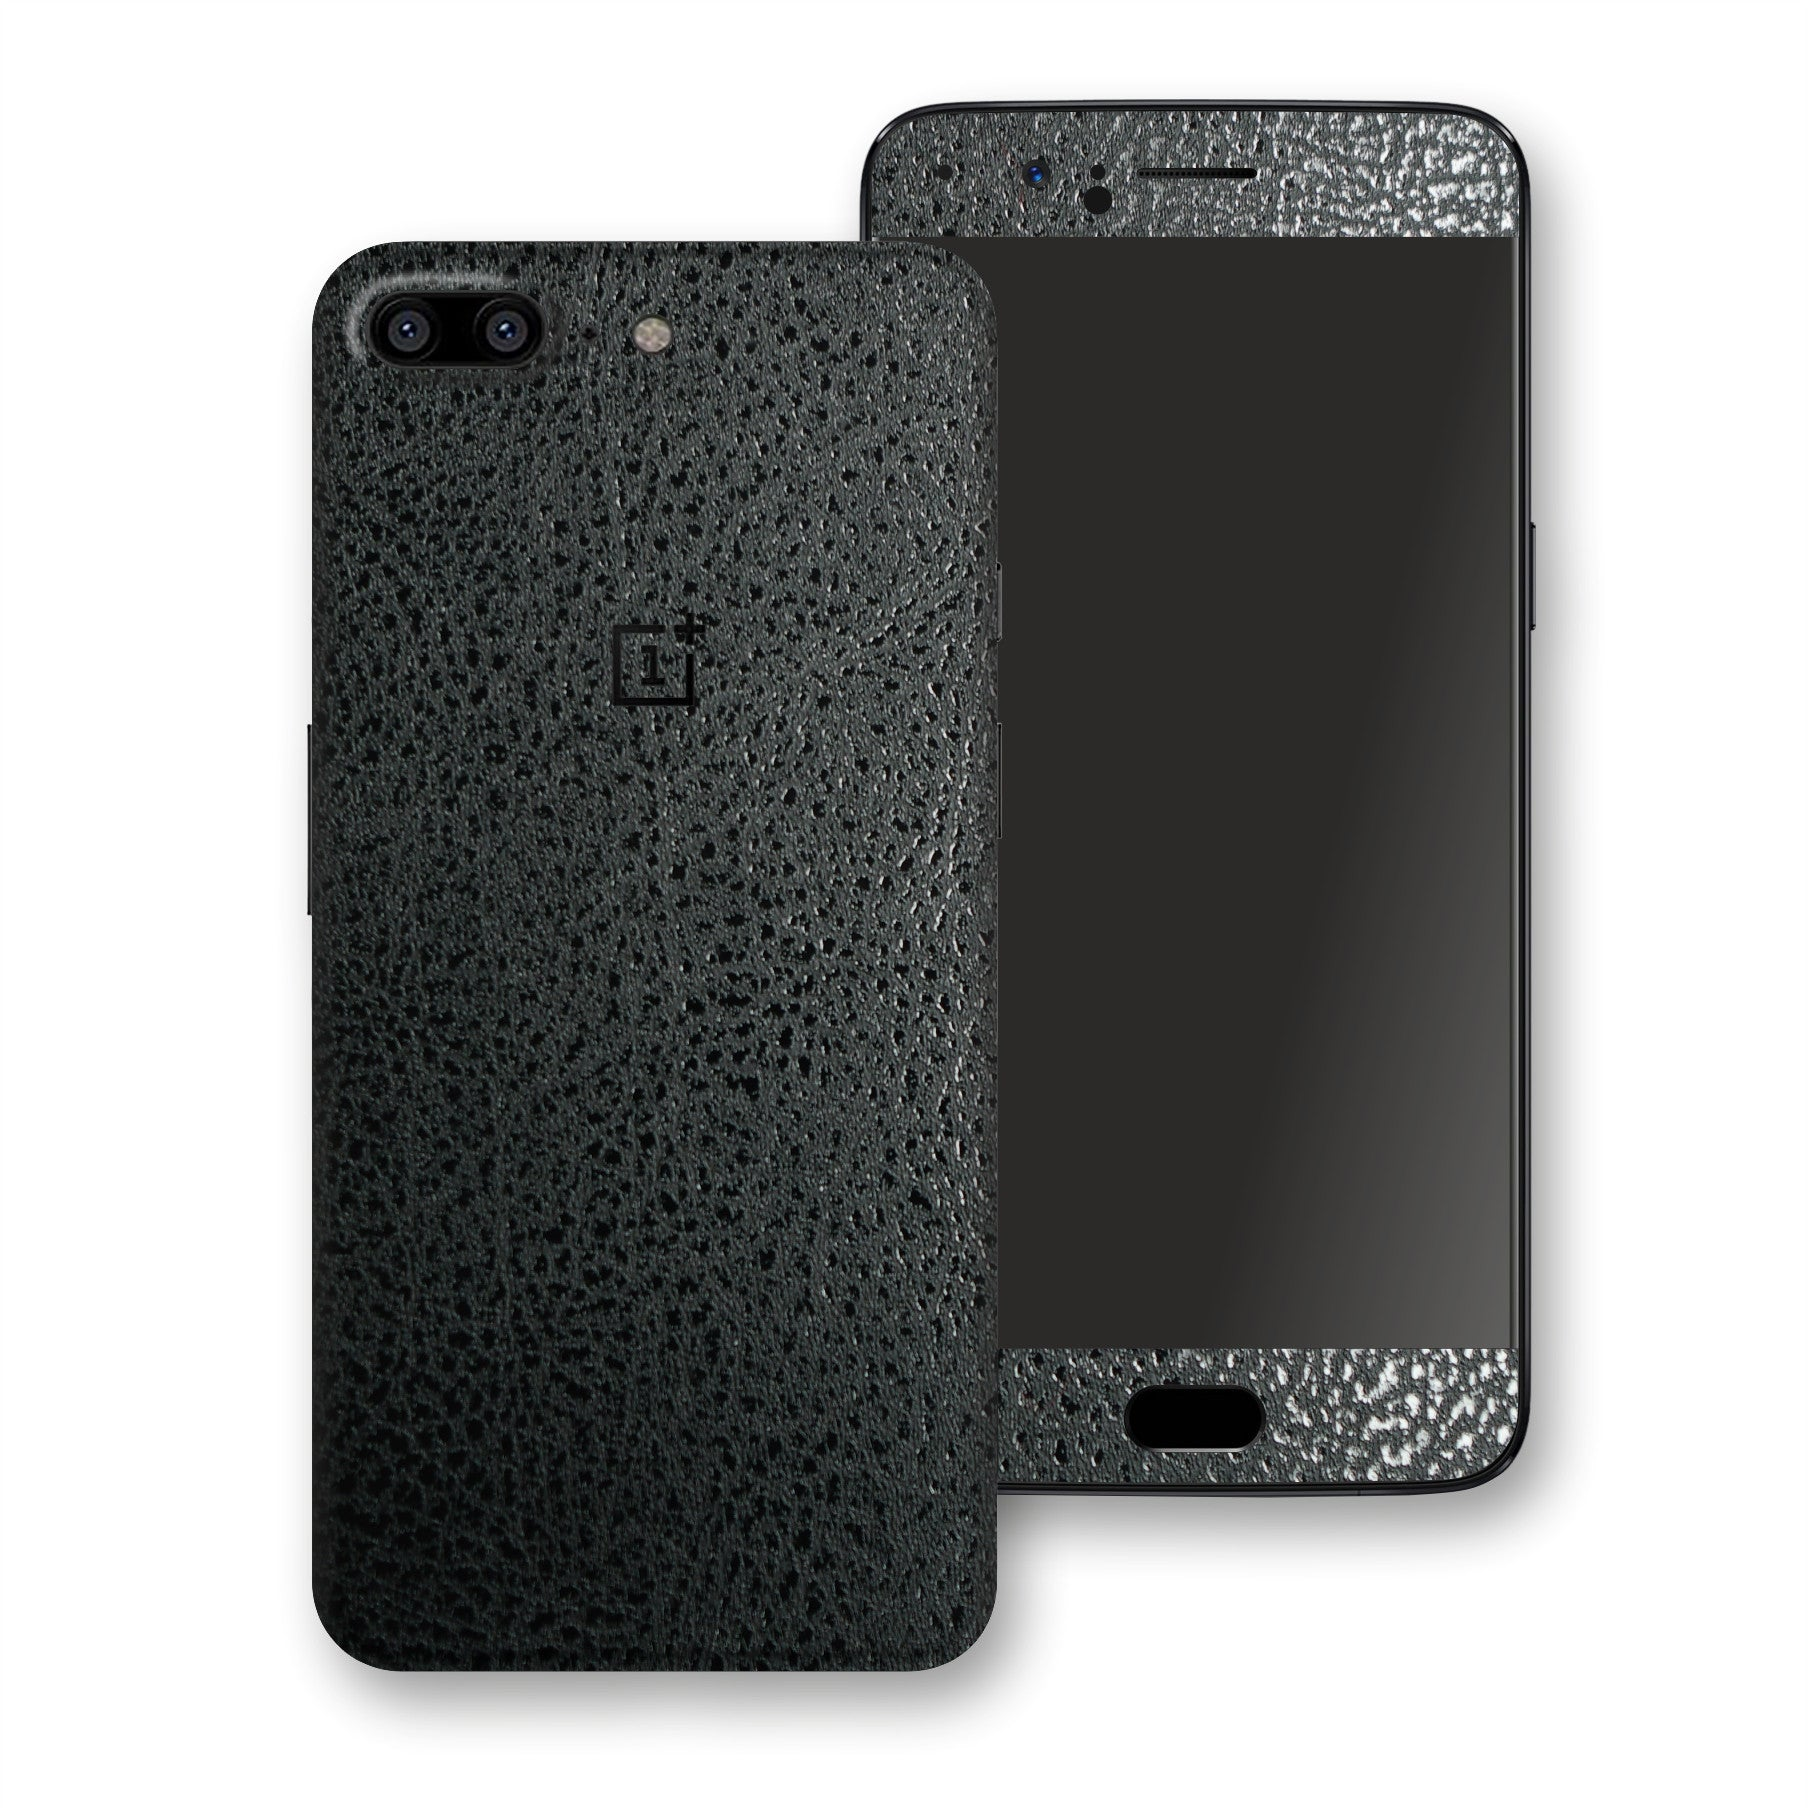 OnePlus 5 Luxuria BLACK Leather Skin Wrap Decal Protector | EasySkinz